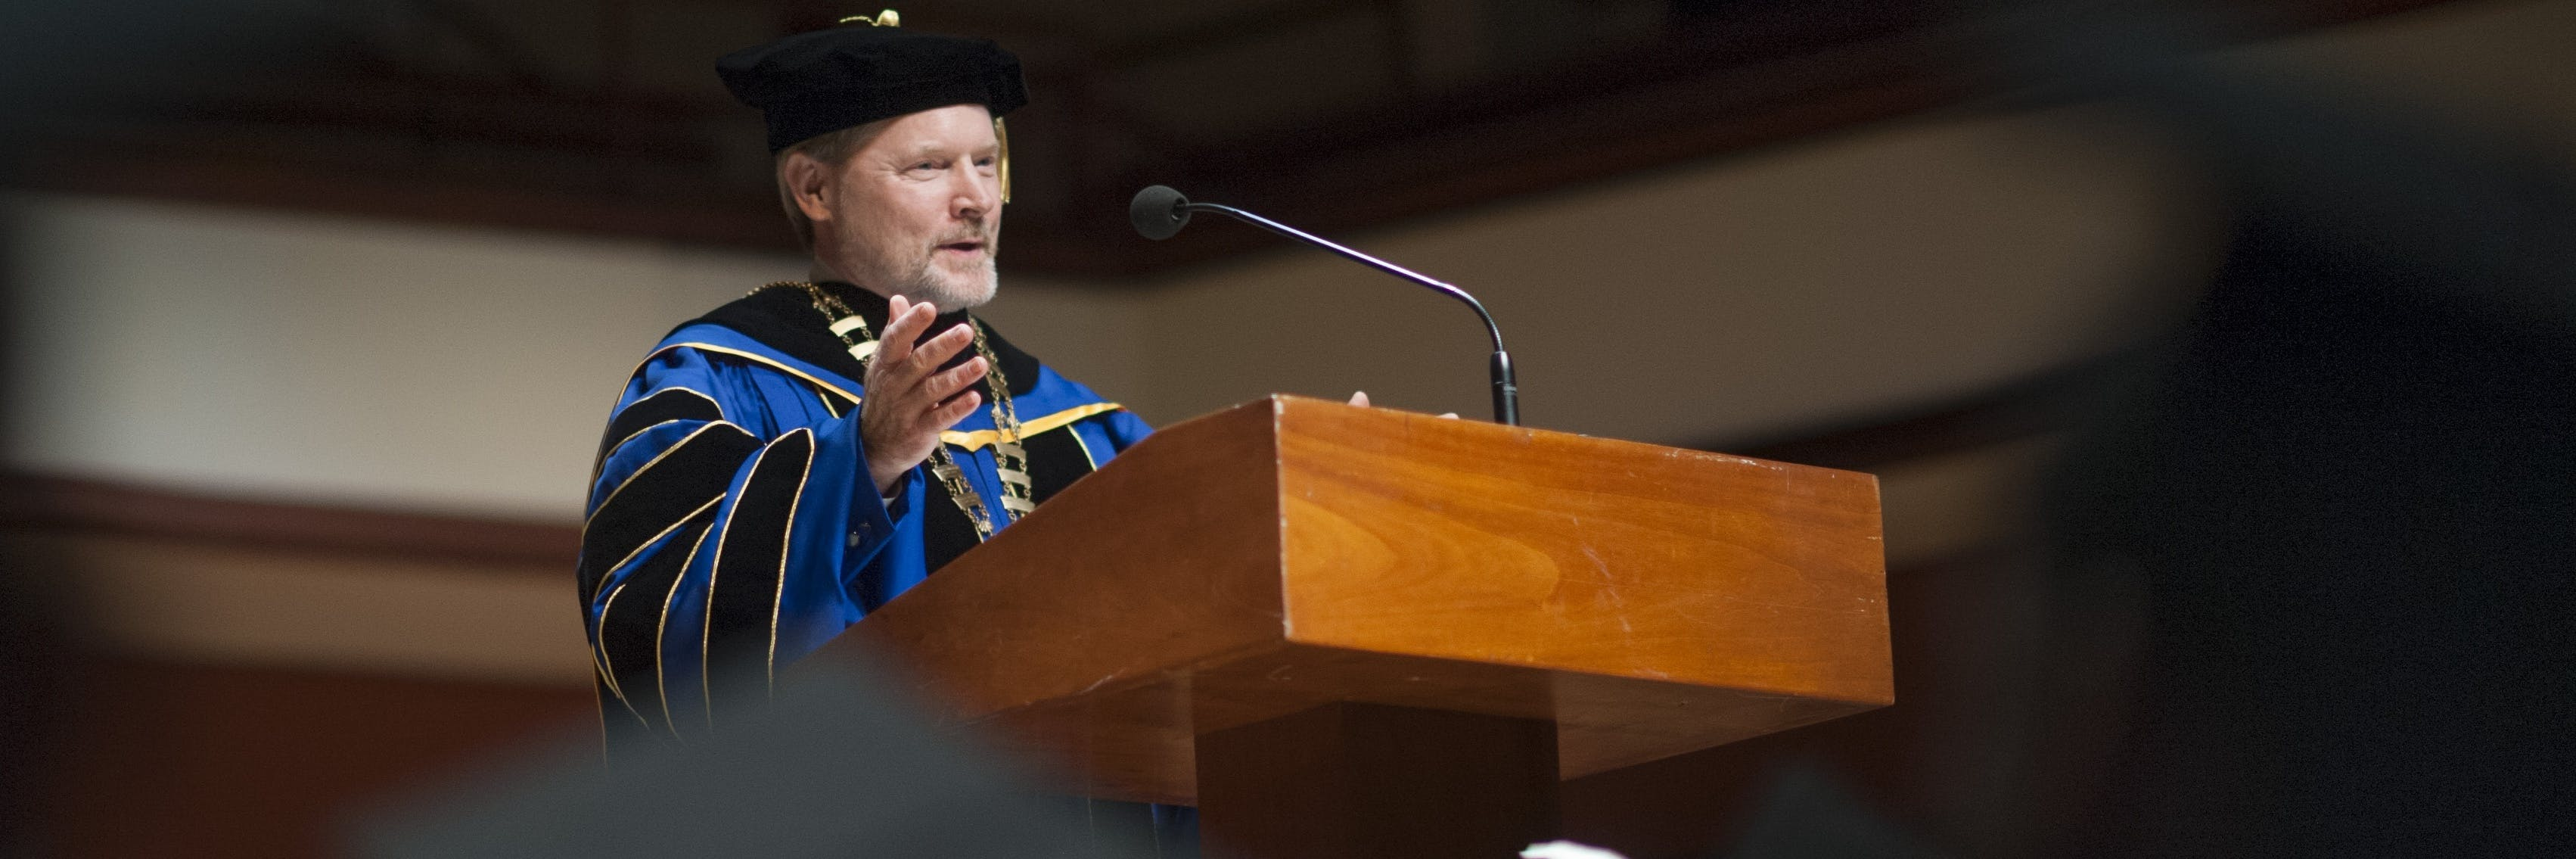 President Jay Barnes speaking at the commencement ceremony